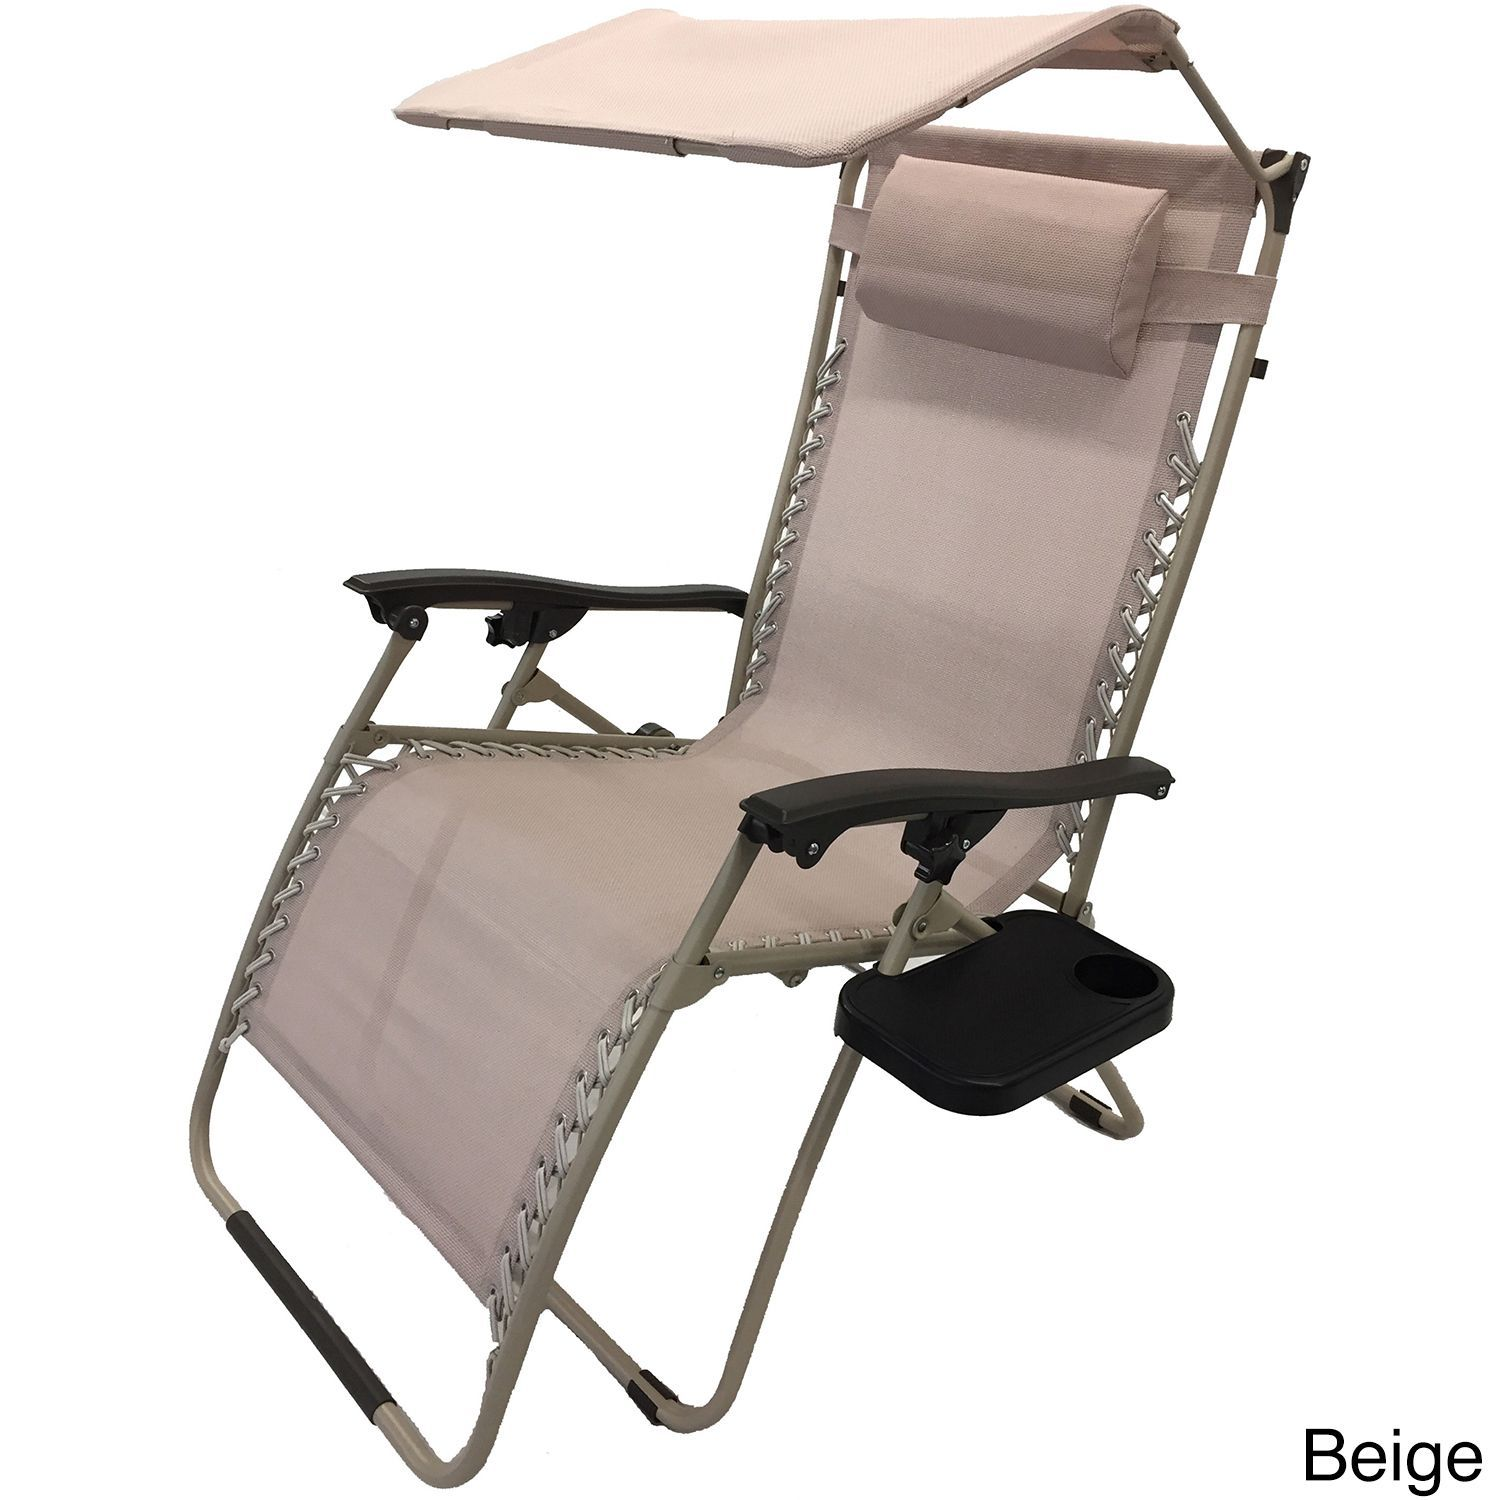 China Mesh Fabric With Steel Frame Zero Gravity Chair With Canopy and Tray (Beige), Patio Furniture